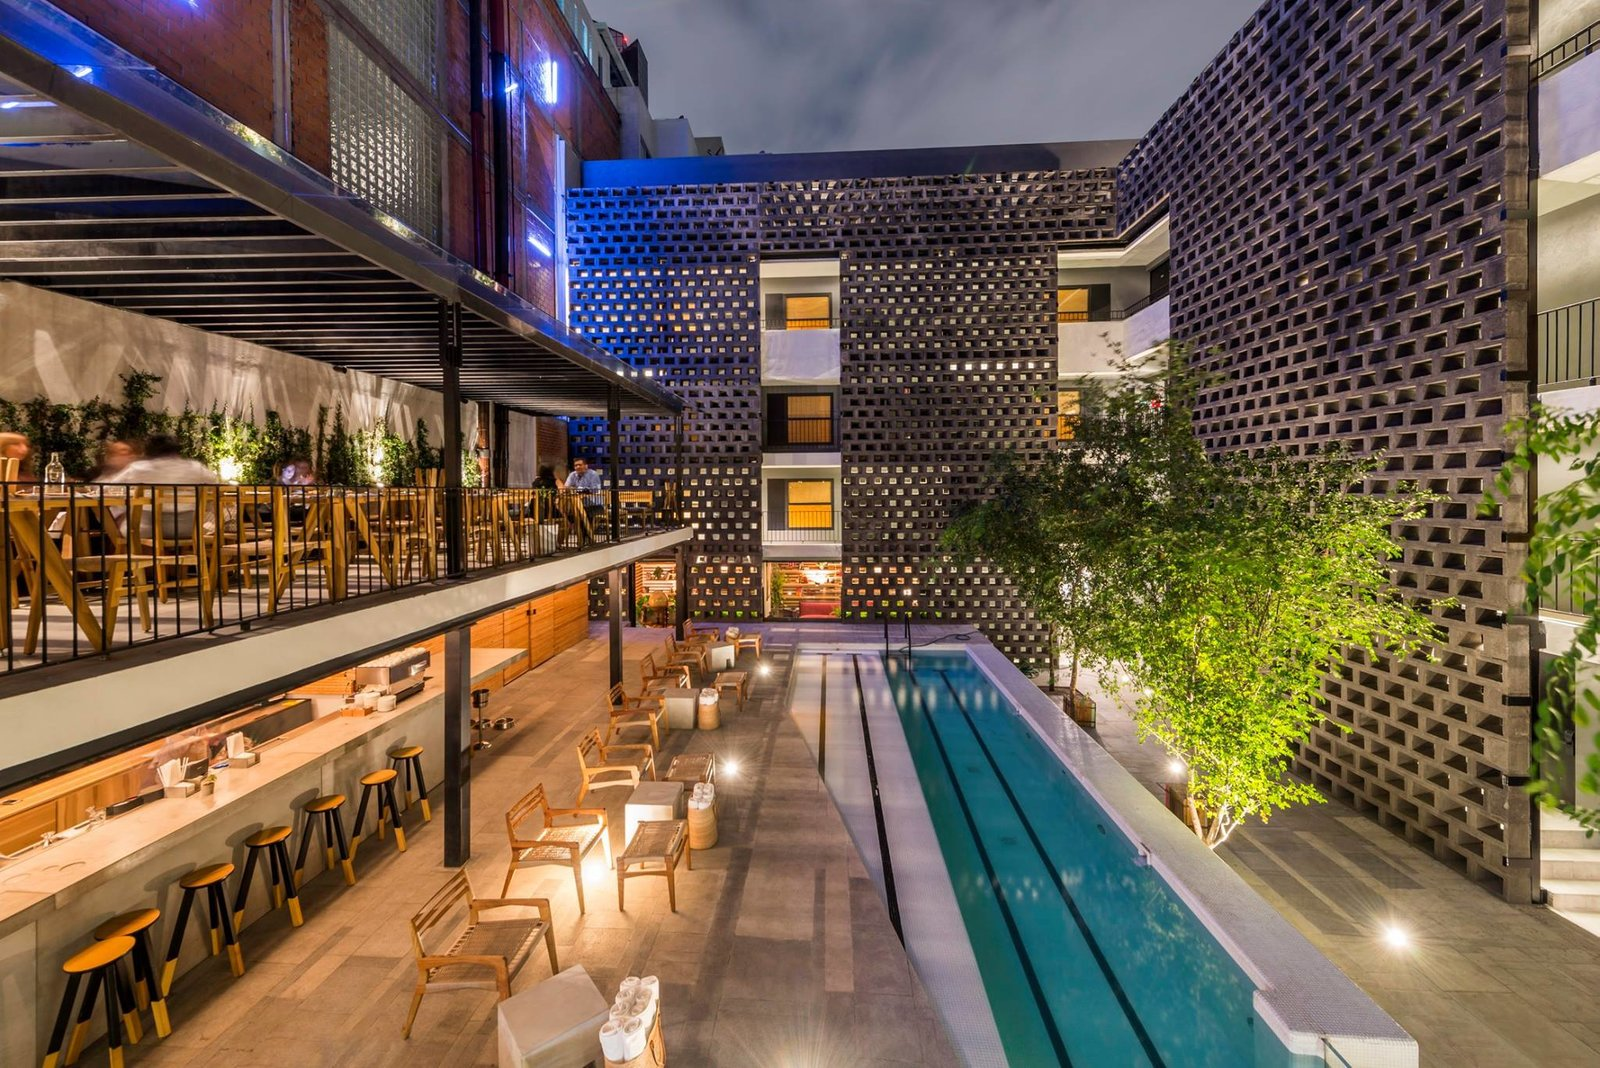 Chic poolside dining at Hotel Carlota.